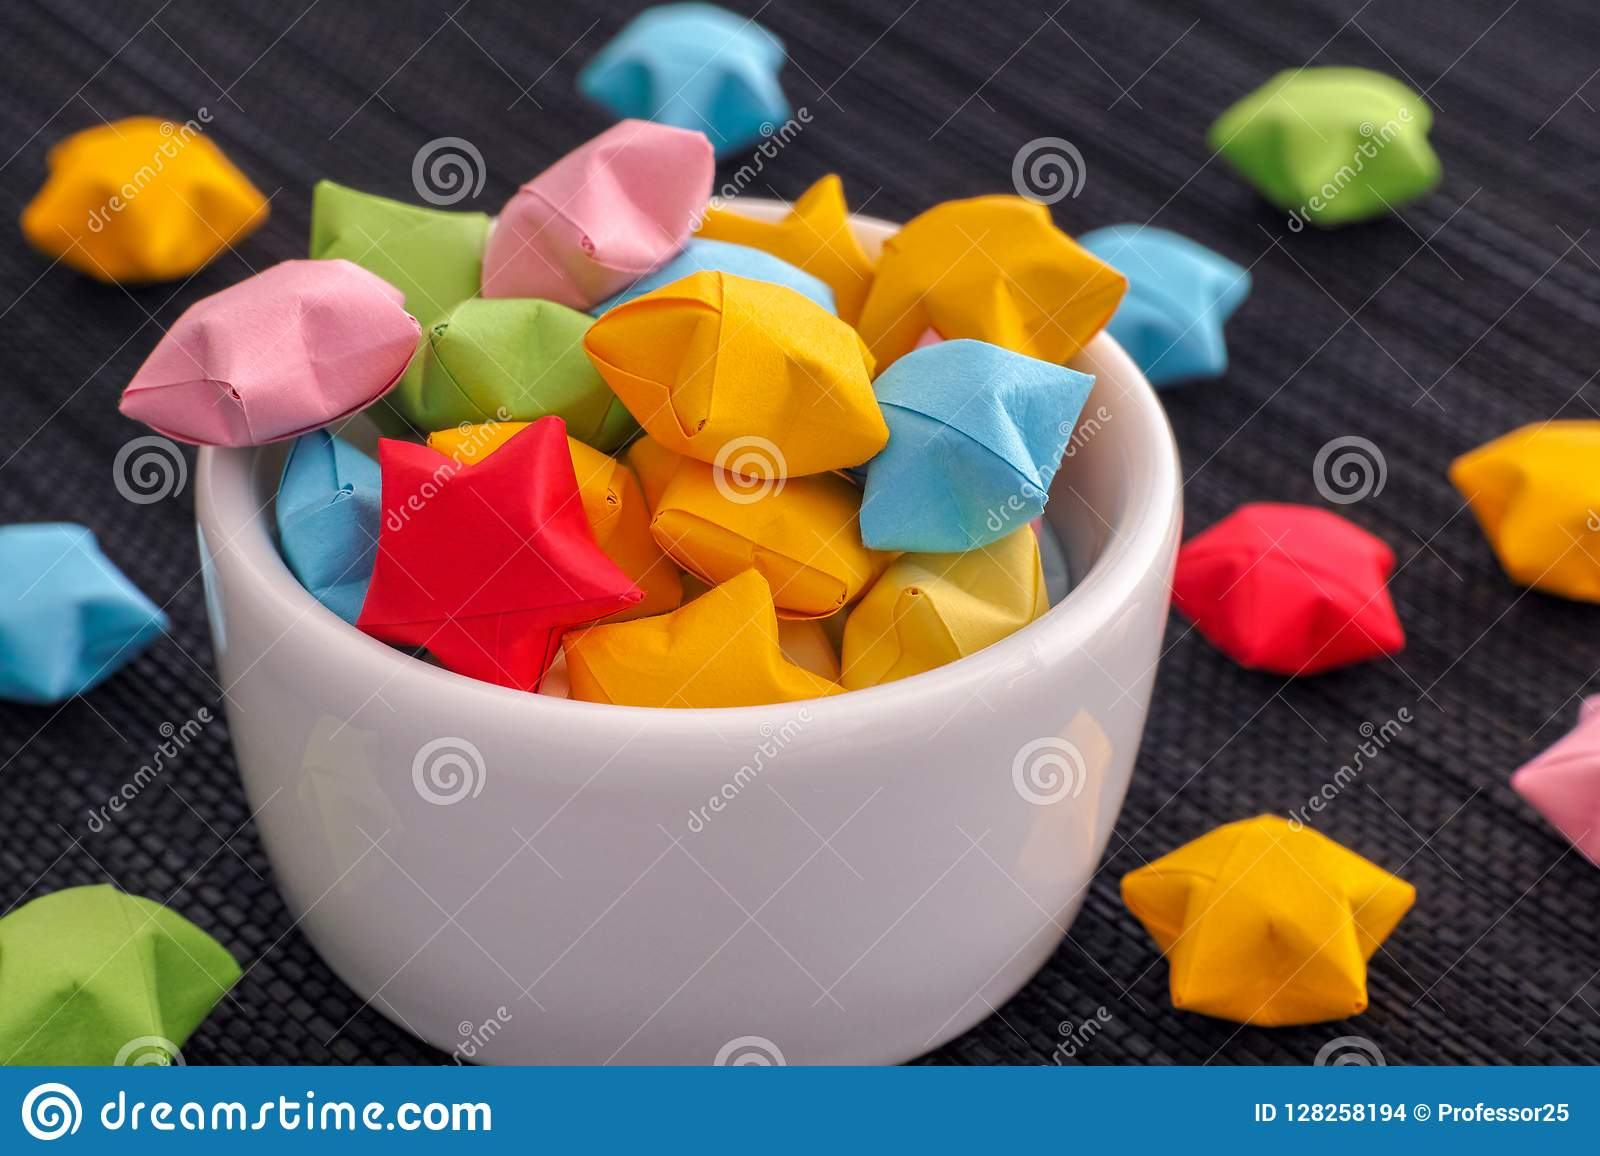 Colorful Origami Lucky Stars In A White Bowl Stock Photo ... - photo#42